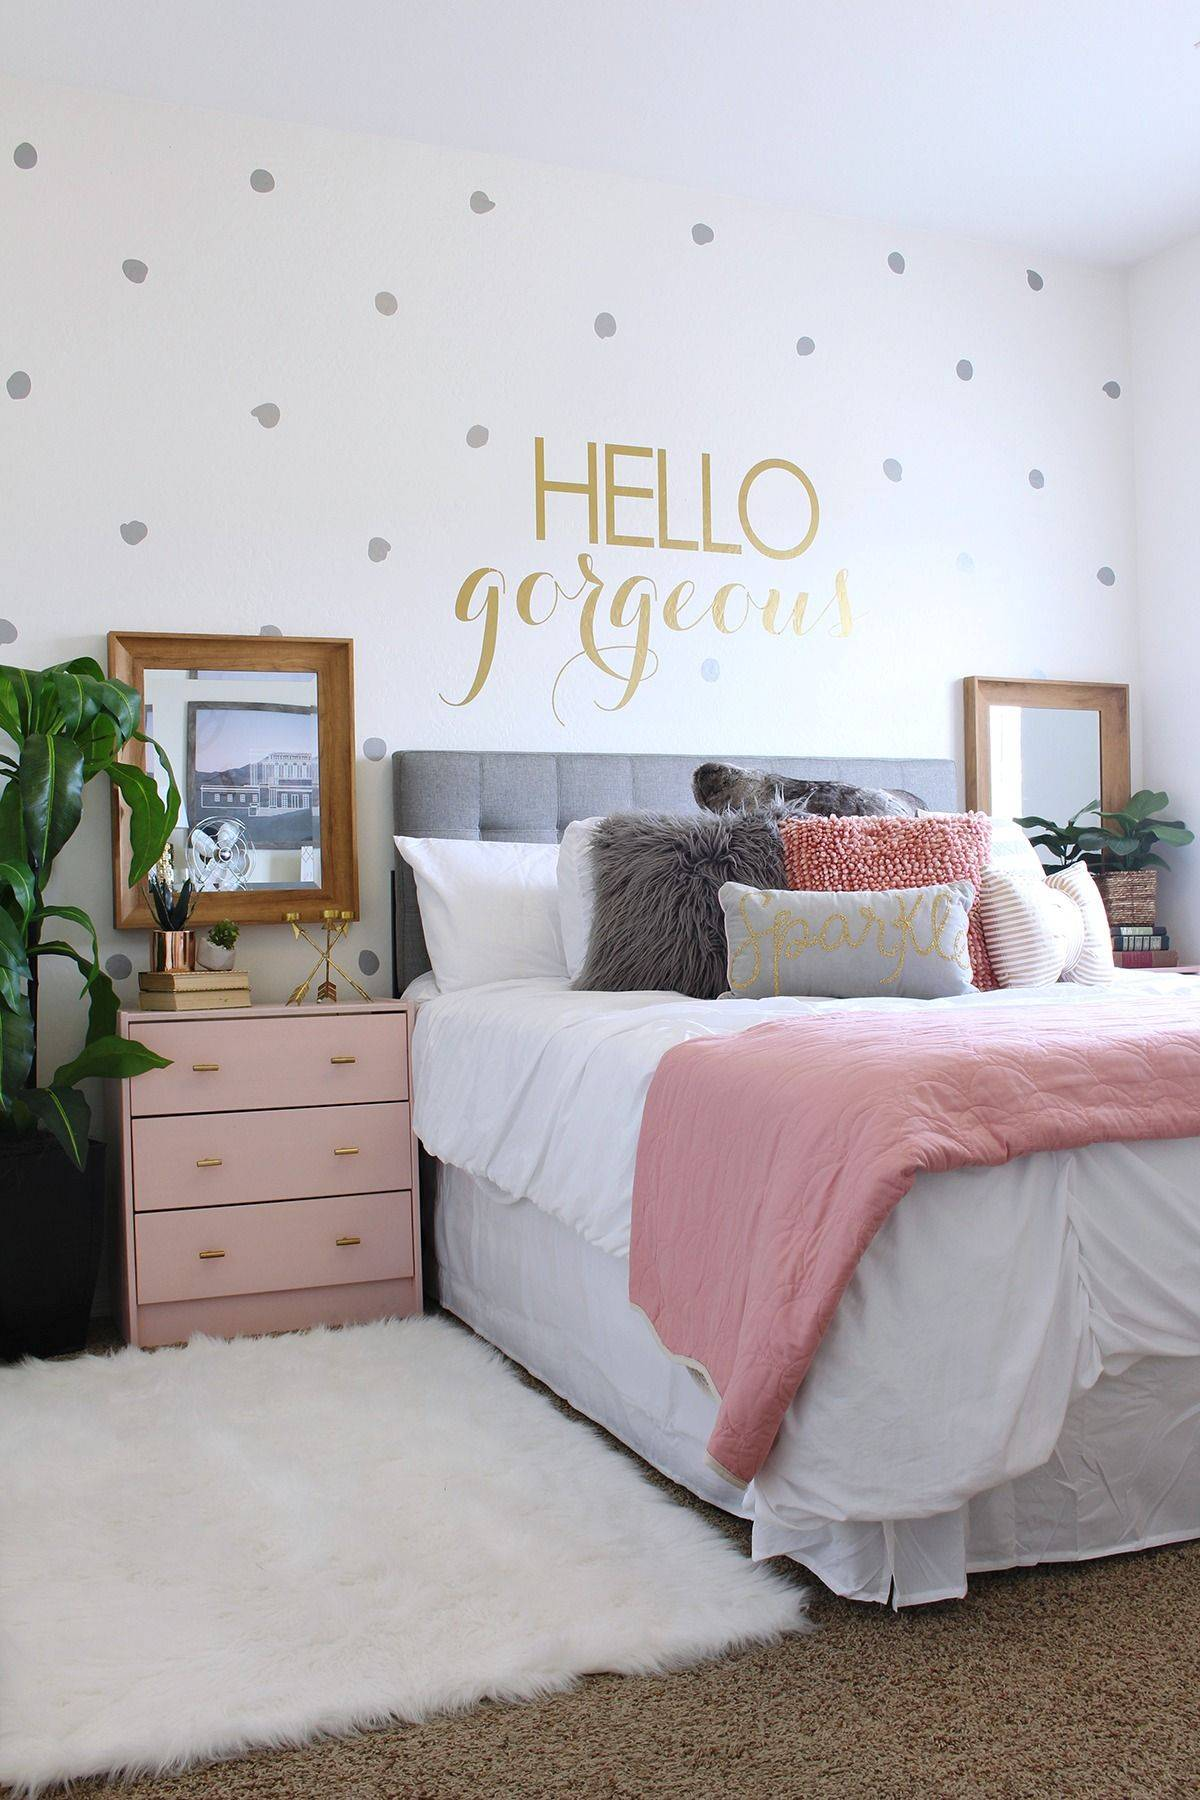 Rooms for Teens Elegant Pin On Classy Clutter Blog